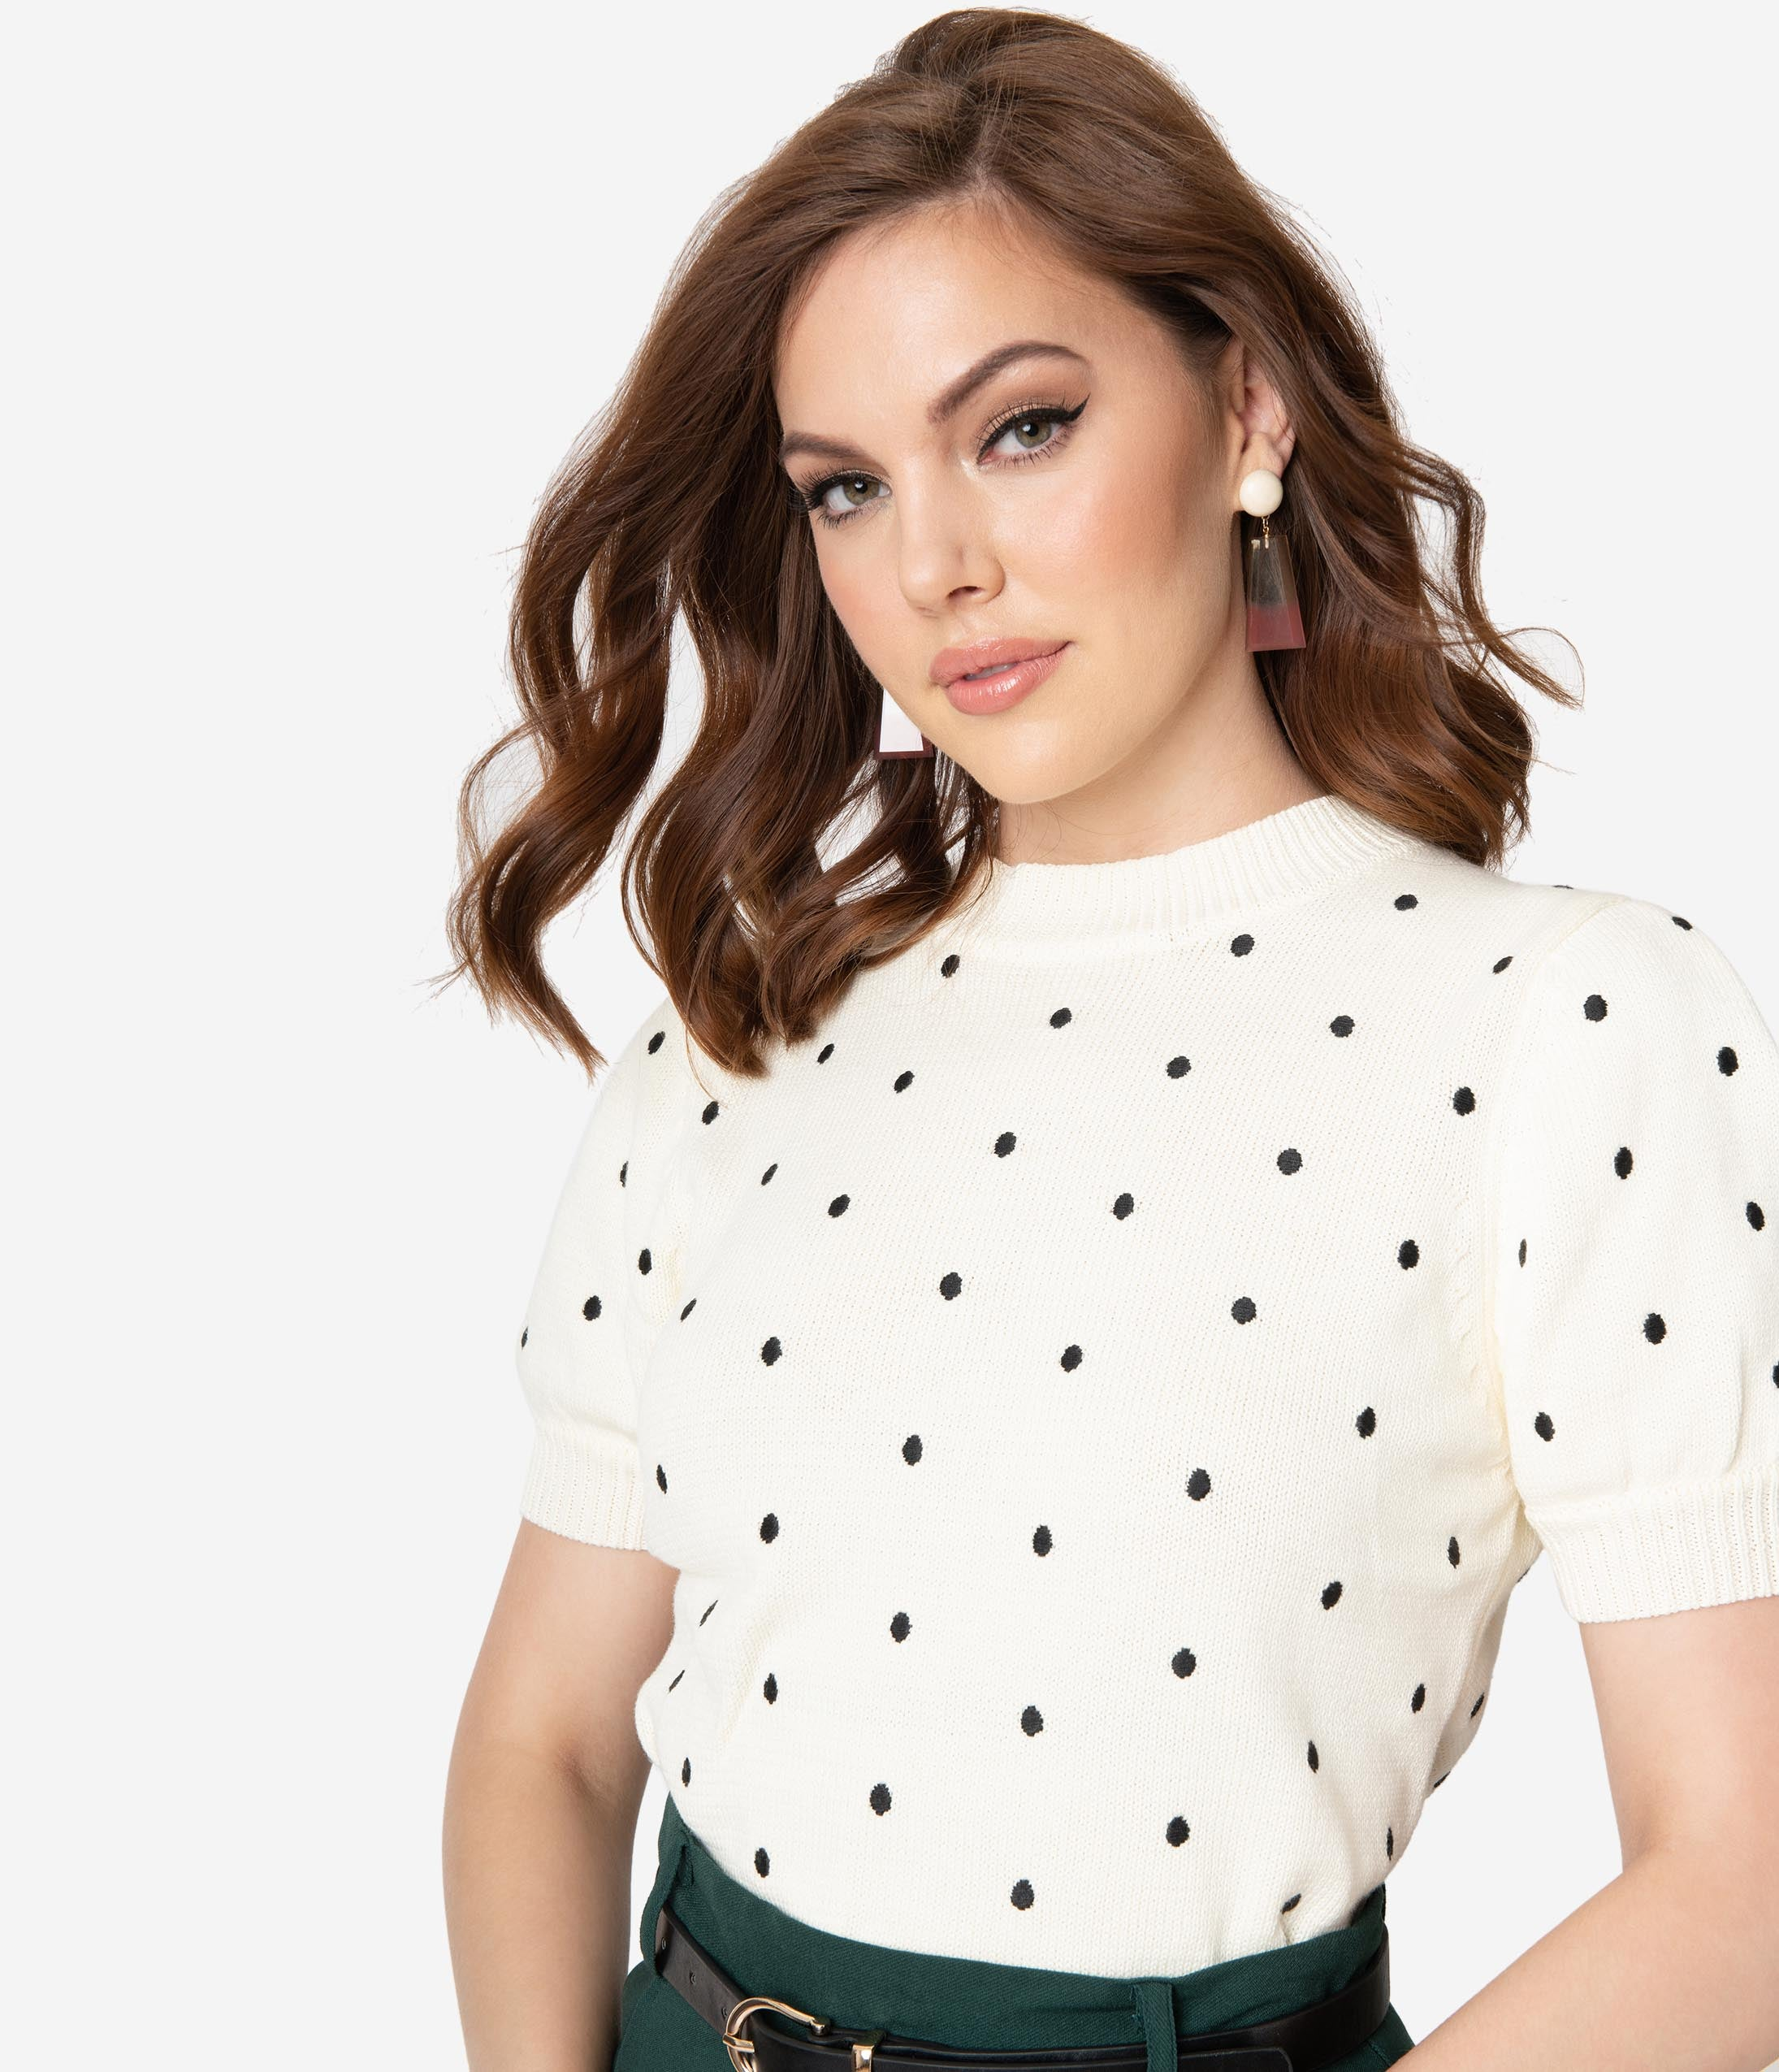 1950s Tops and Blouse Styles Cream  Black Polka Dot Short Sleeve Cotton Knit Sweater $42.00 AT vintagedancer.com